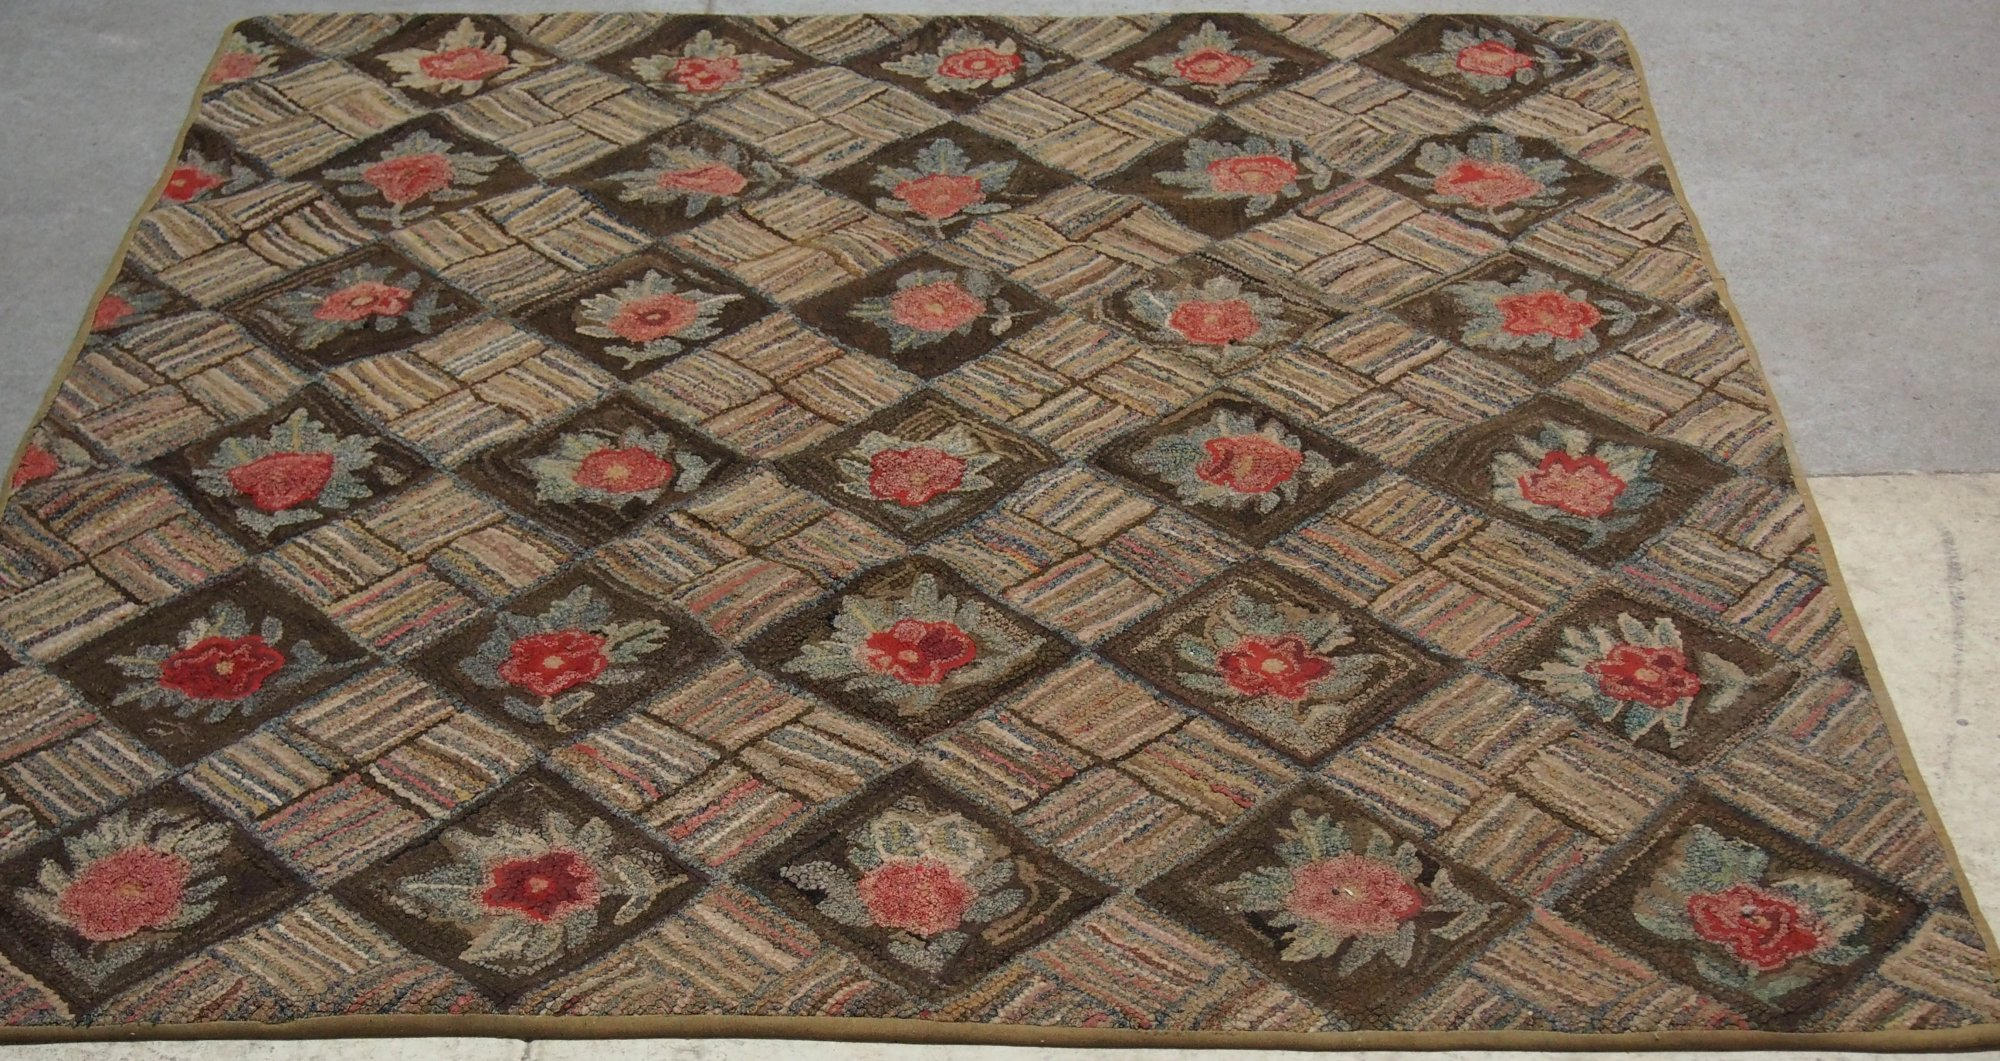 4 Block Diamonds And Roses Antique Hooked Rug